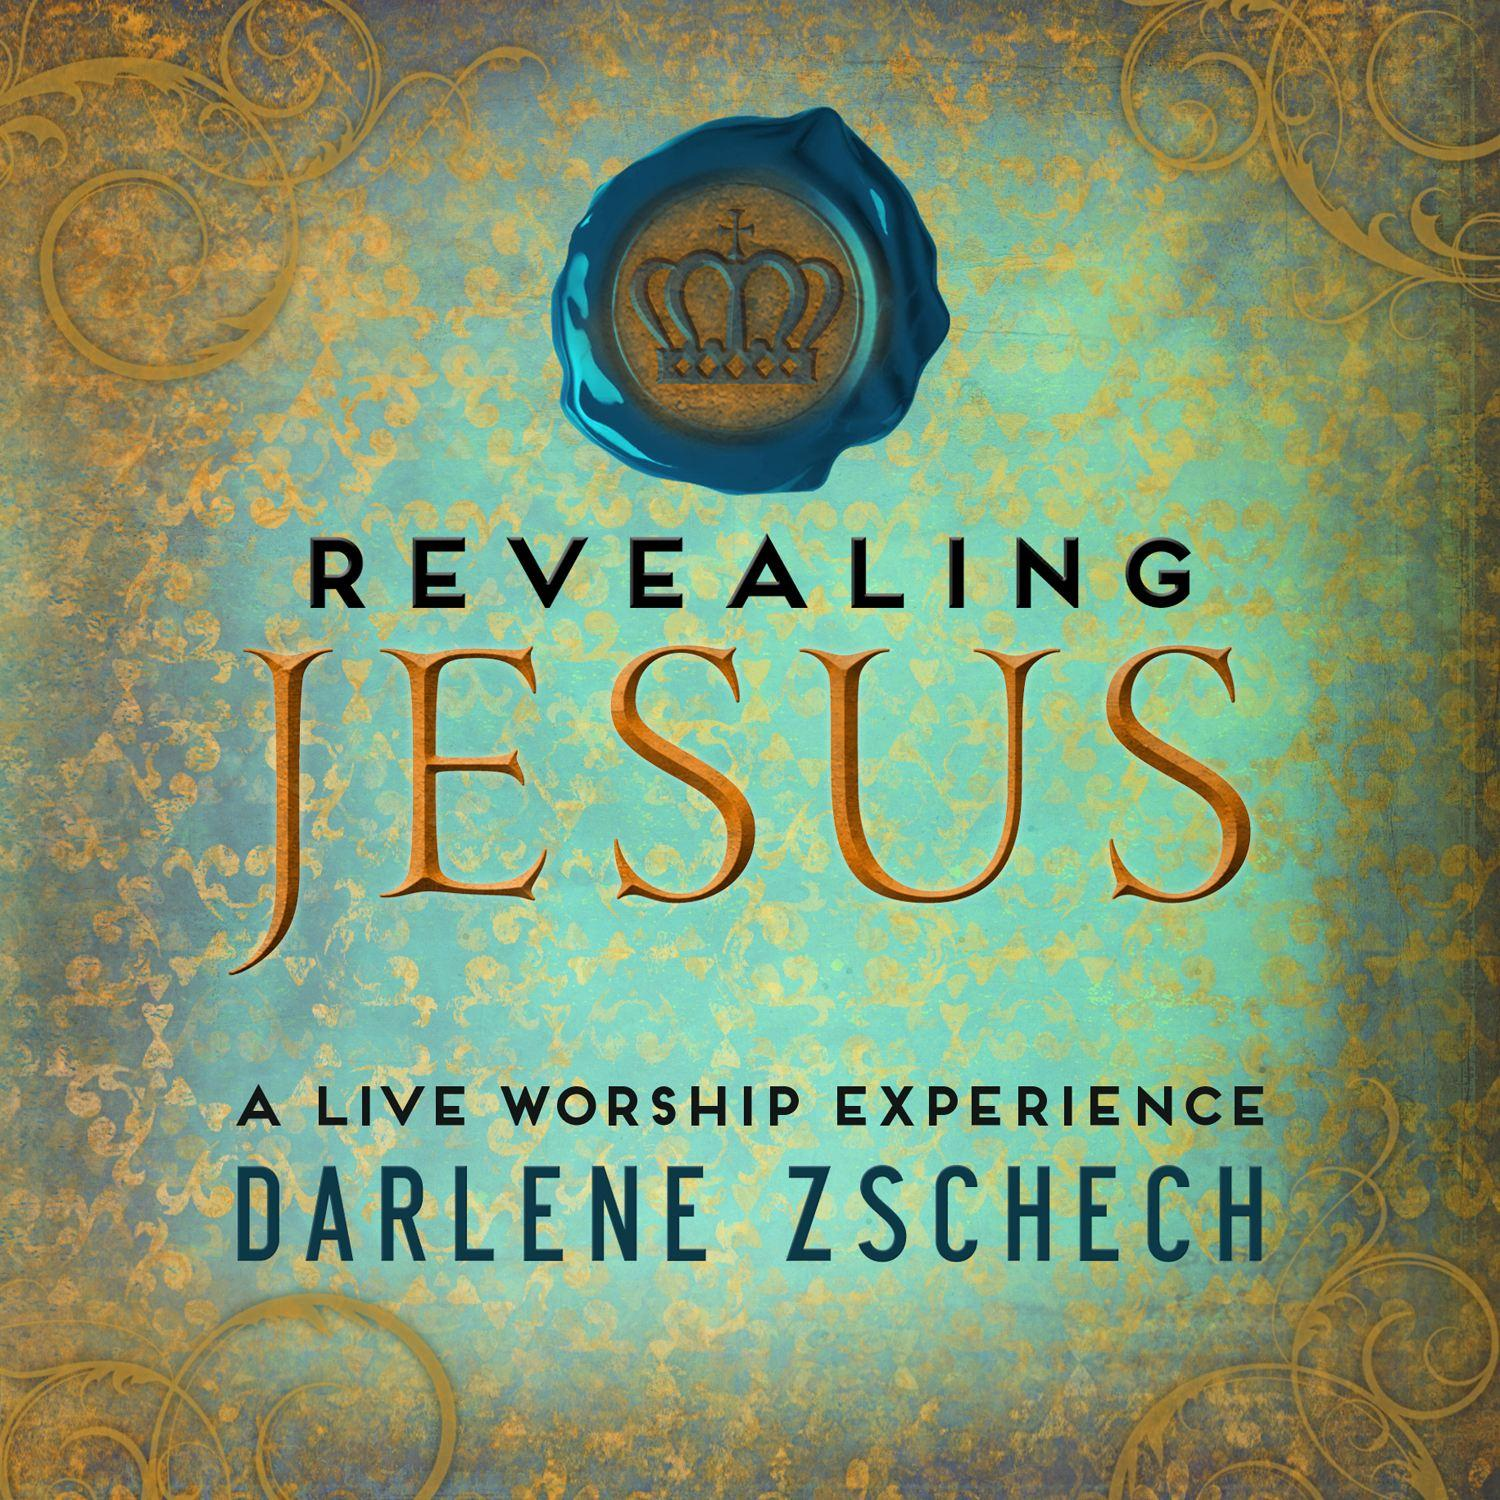 Darlene Zschech: Revealing Jesus: A Live Worship Experience (Audiobook)